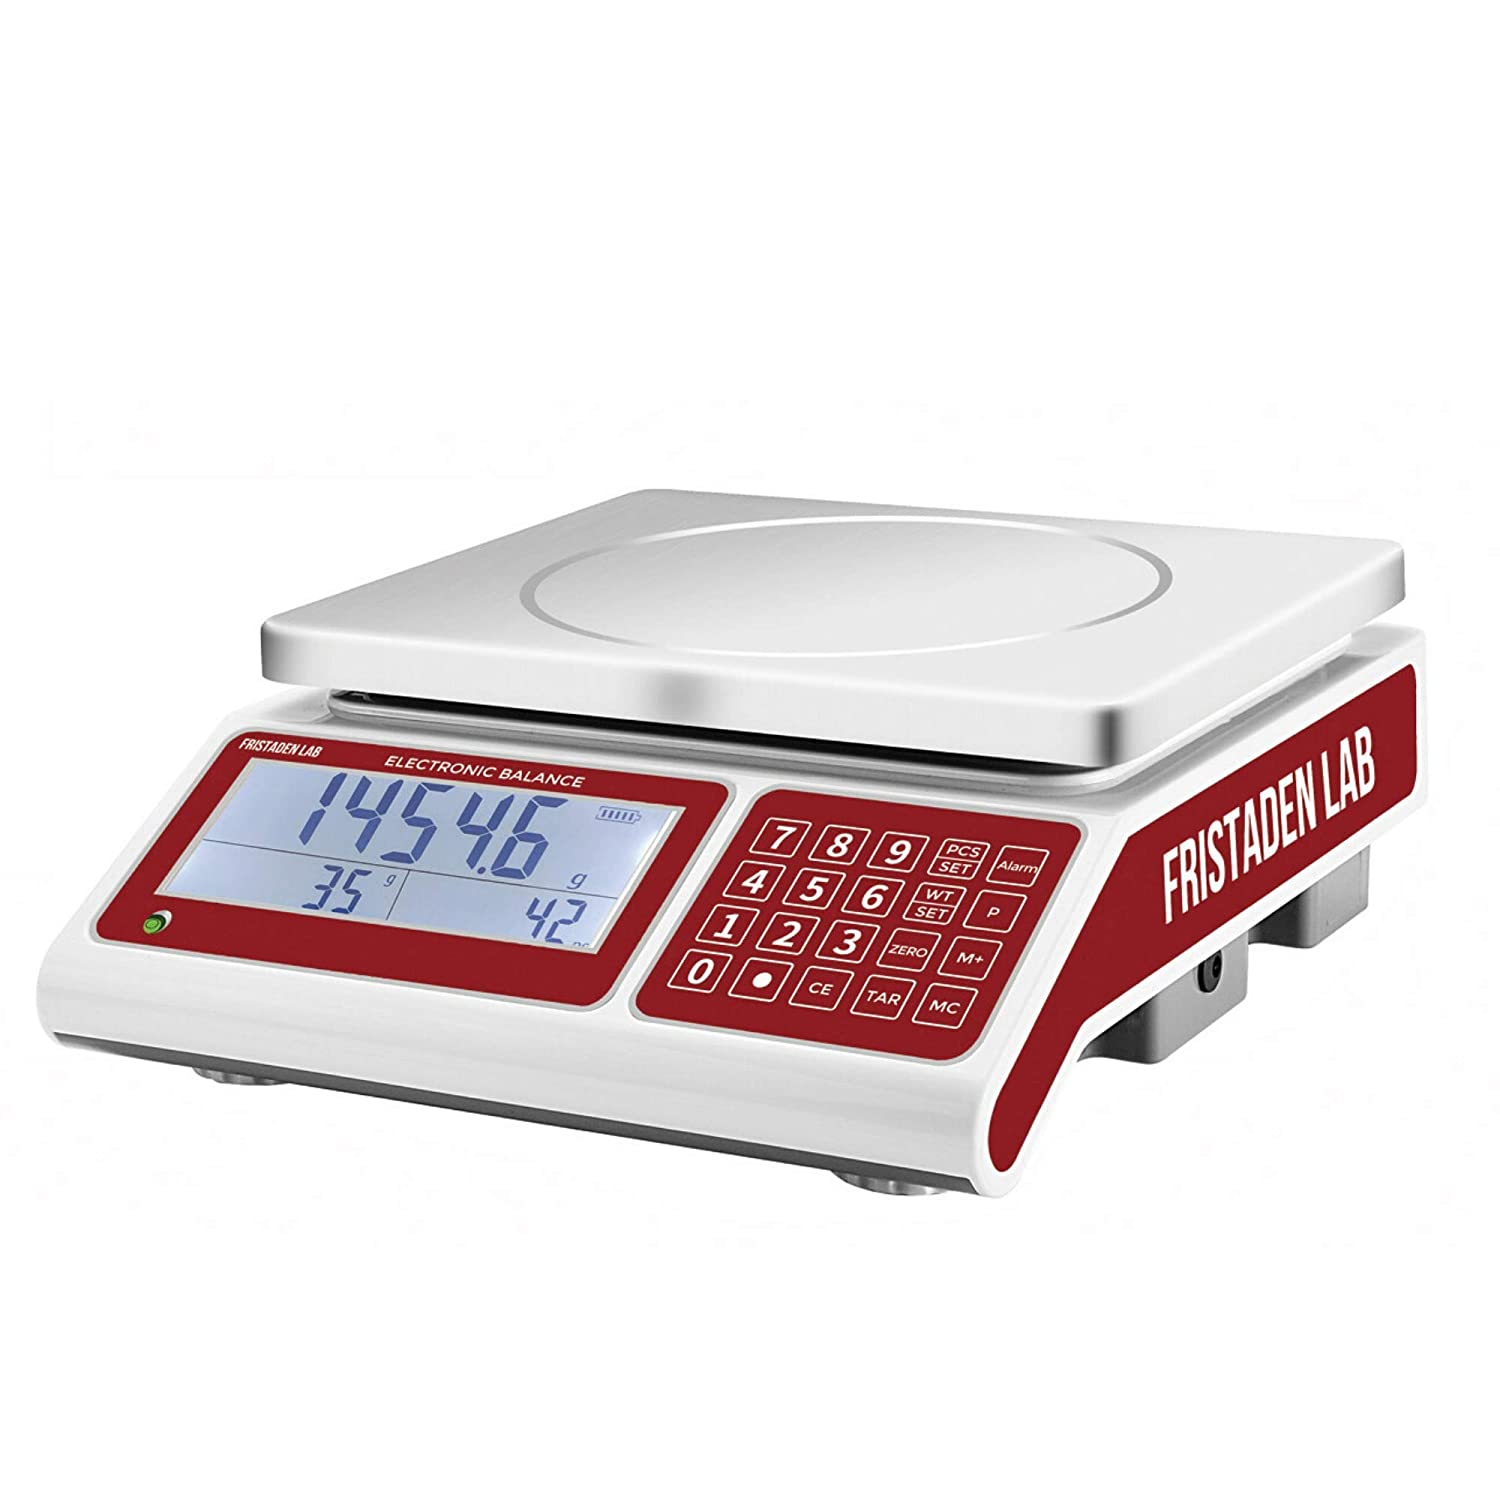 American Fristaden Lab Industrial Counting Scale | Digital Balance for Counting Parts and Coins with 30kg Capacity & 0.5g Accuracy | Electronic Gram Scale | 1YR Warranty